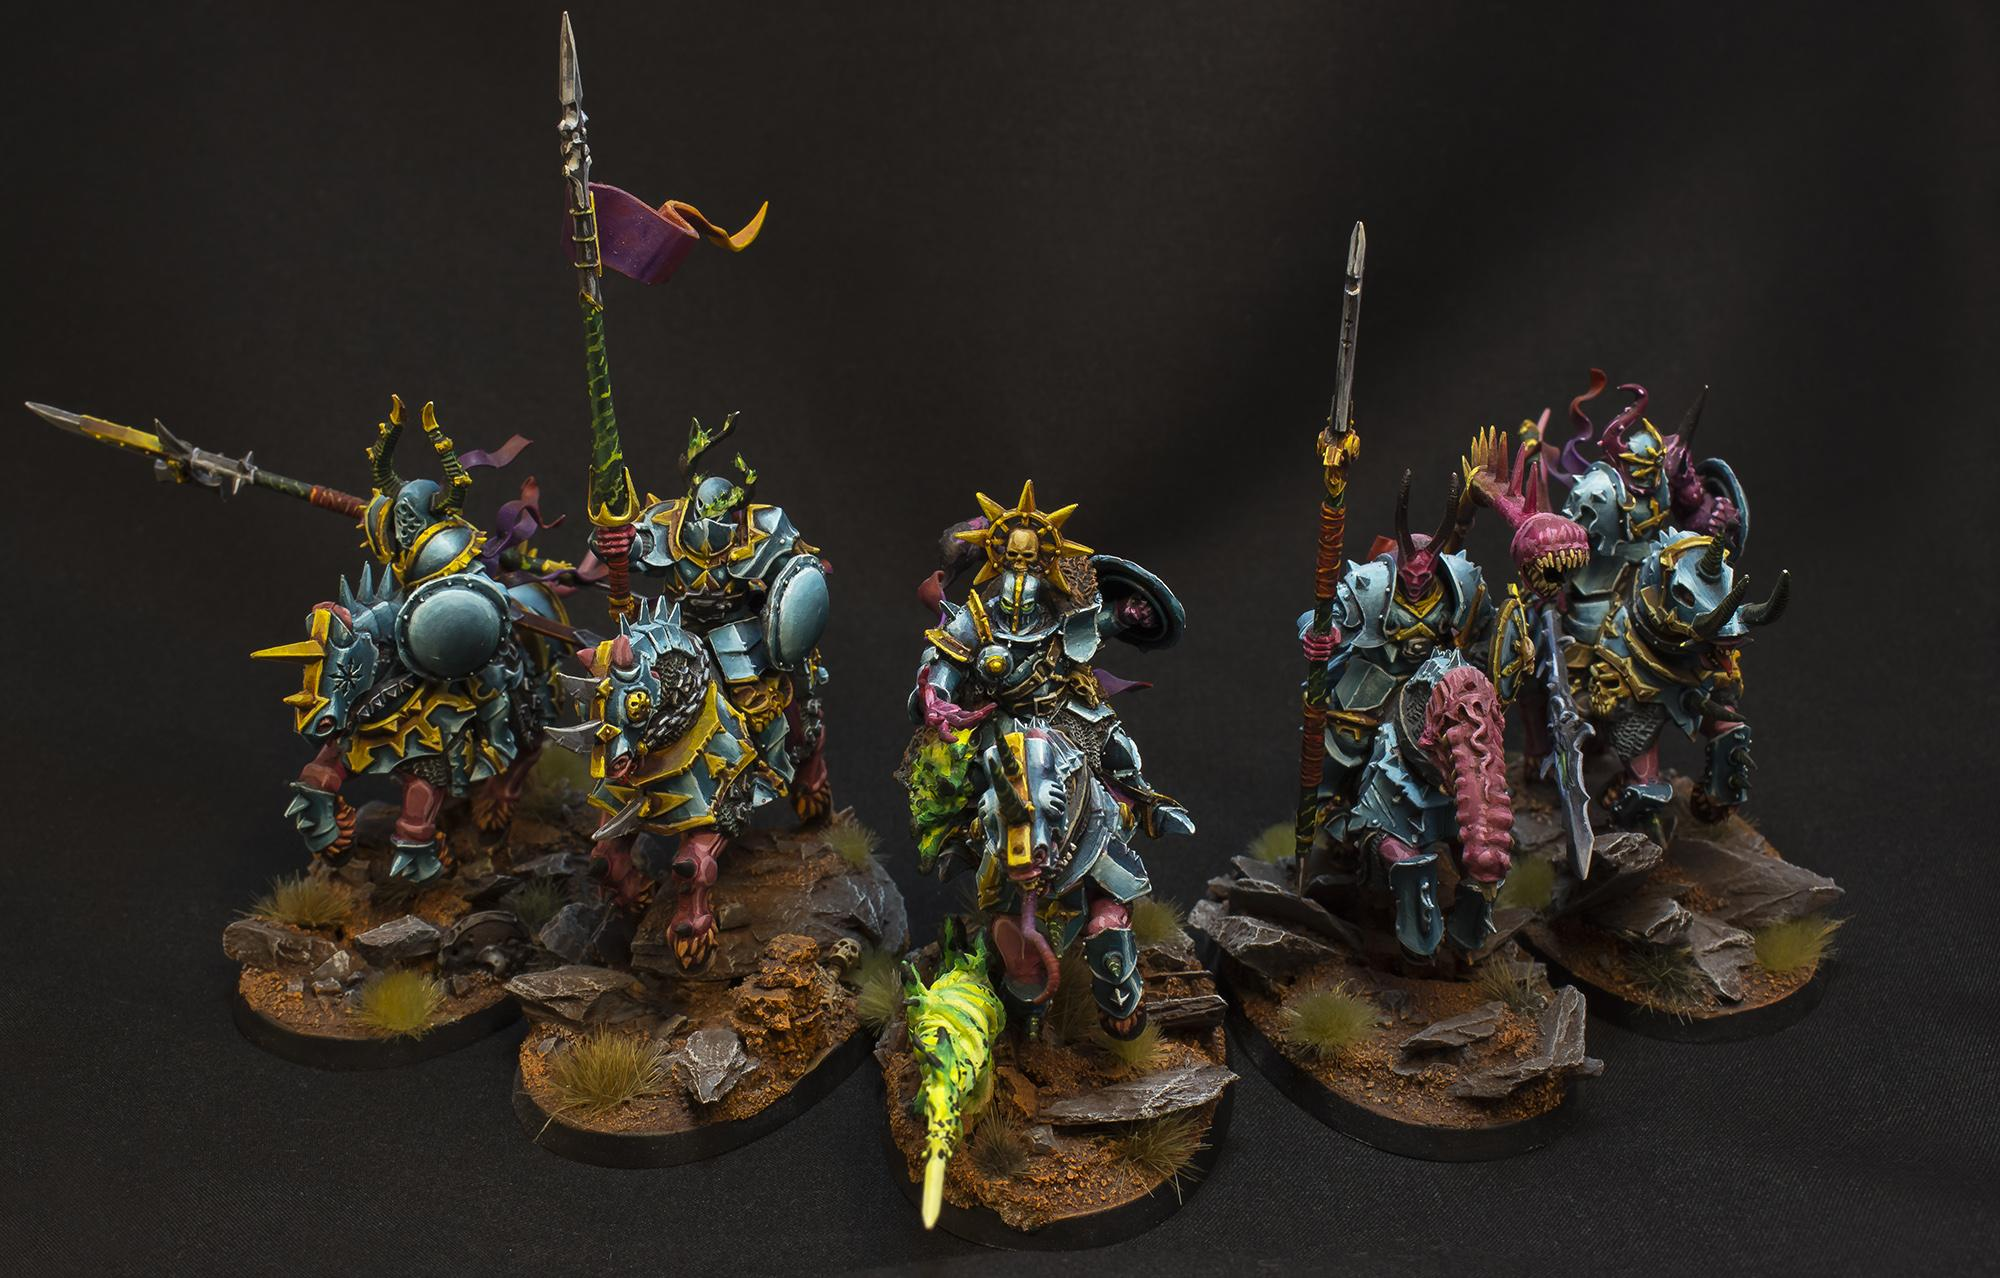 Age Of Sigmar, Chaos, Chaos Lnights, Conversion, Knights, Tzeentch, Warriors Of Chaos